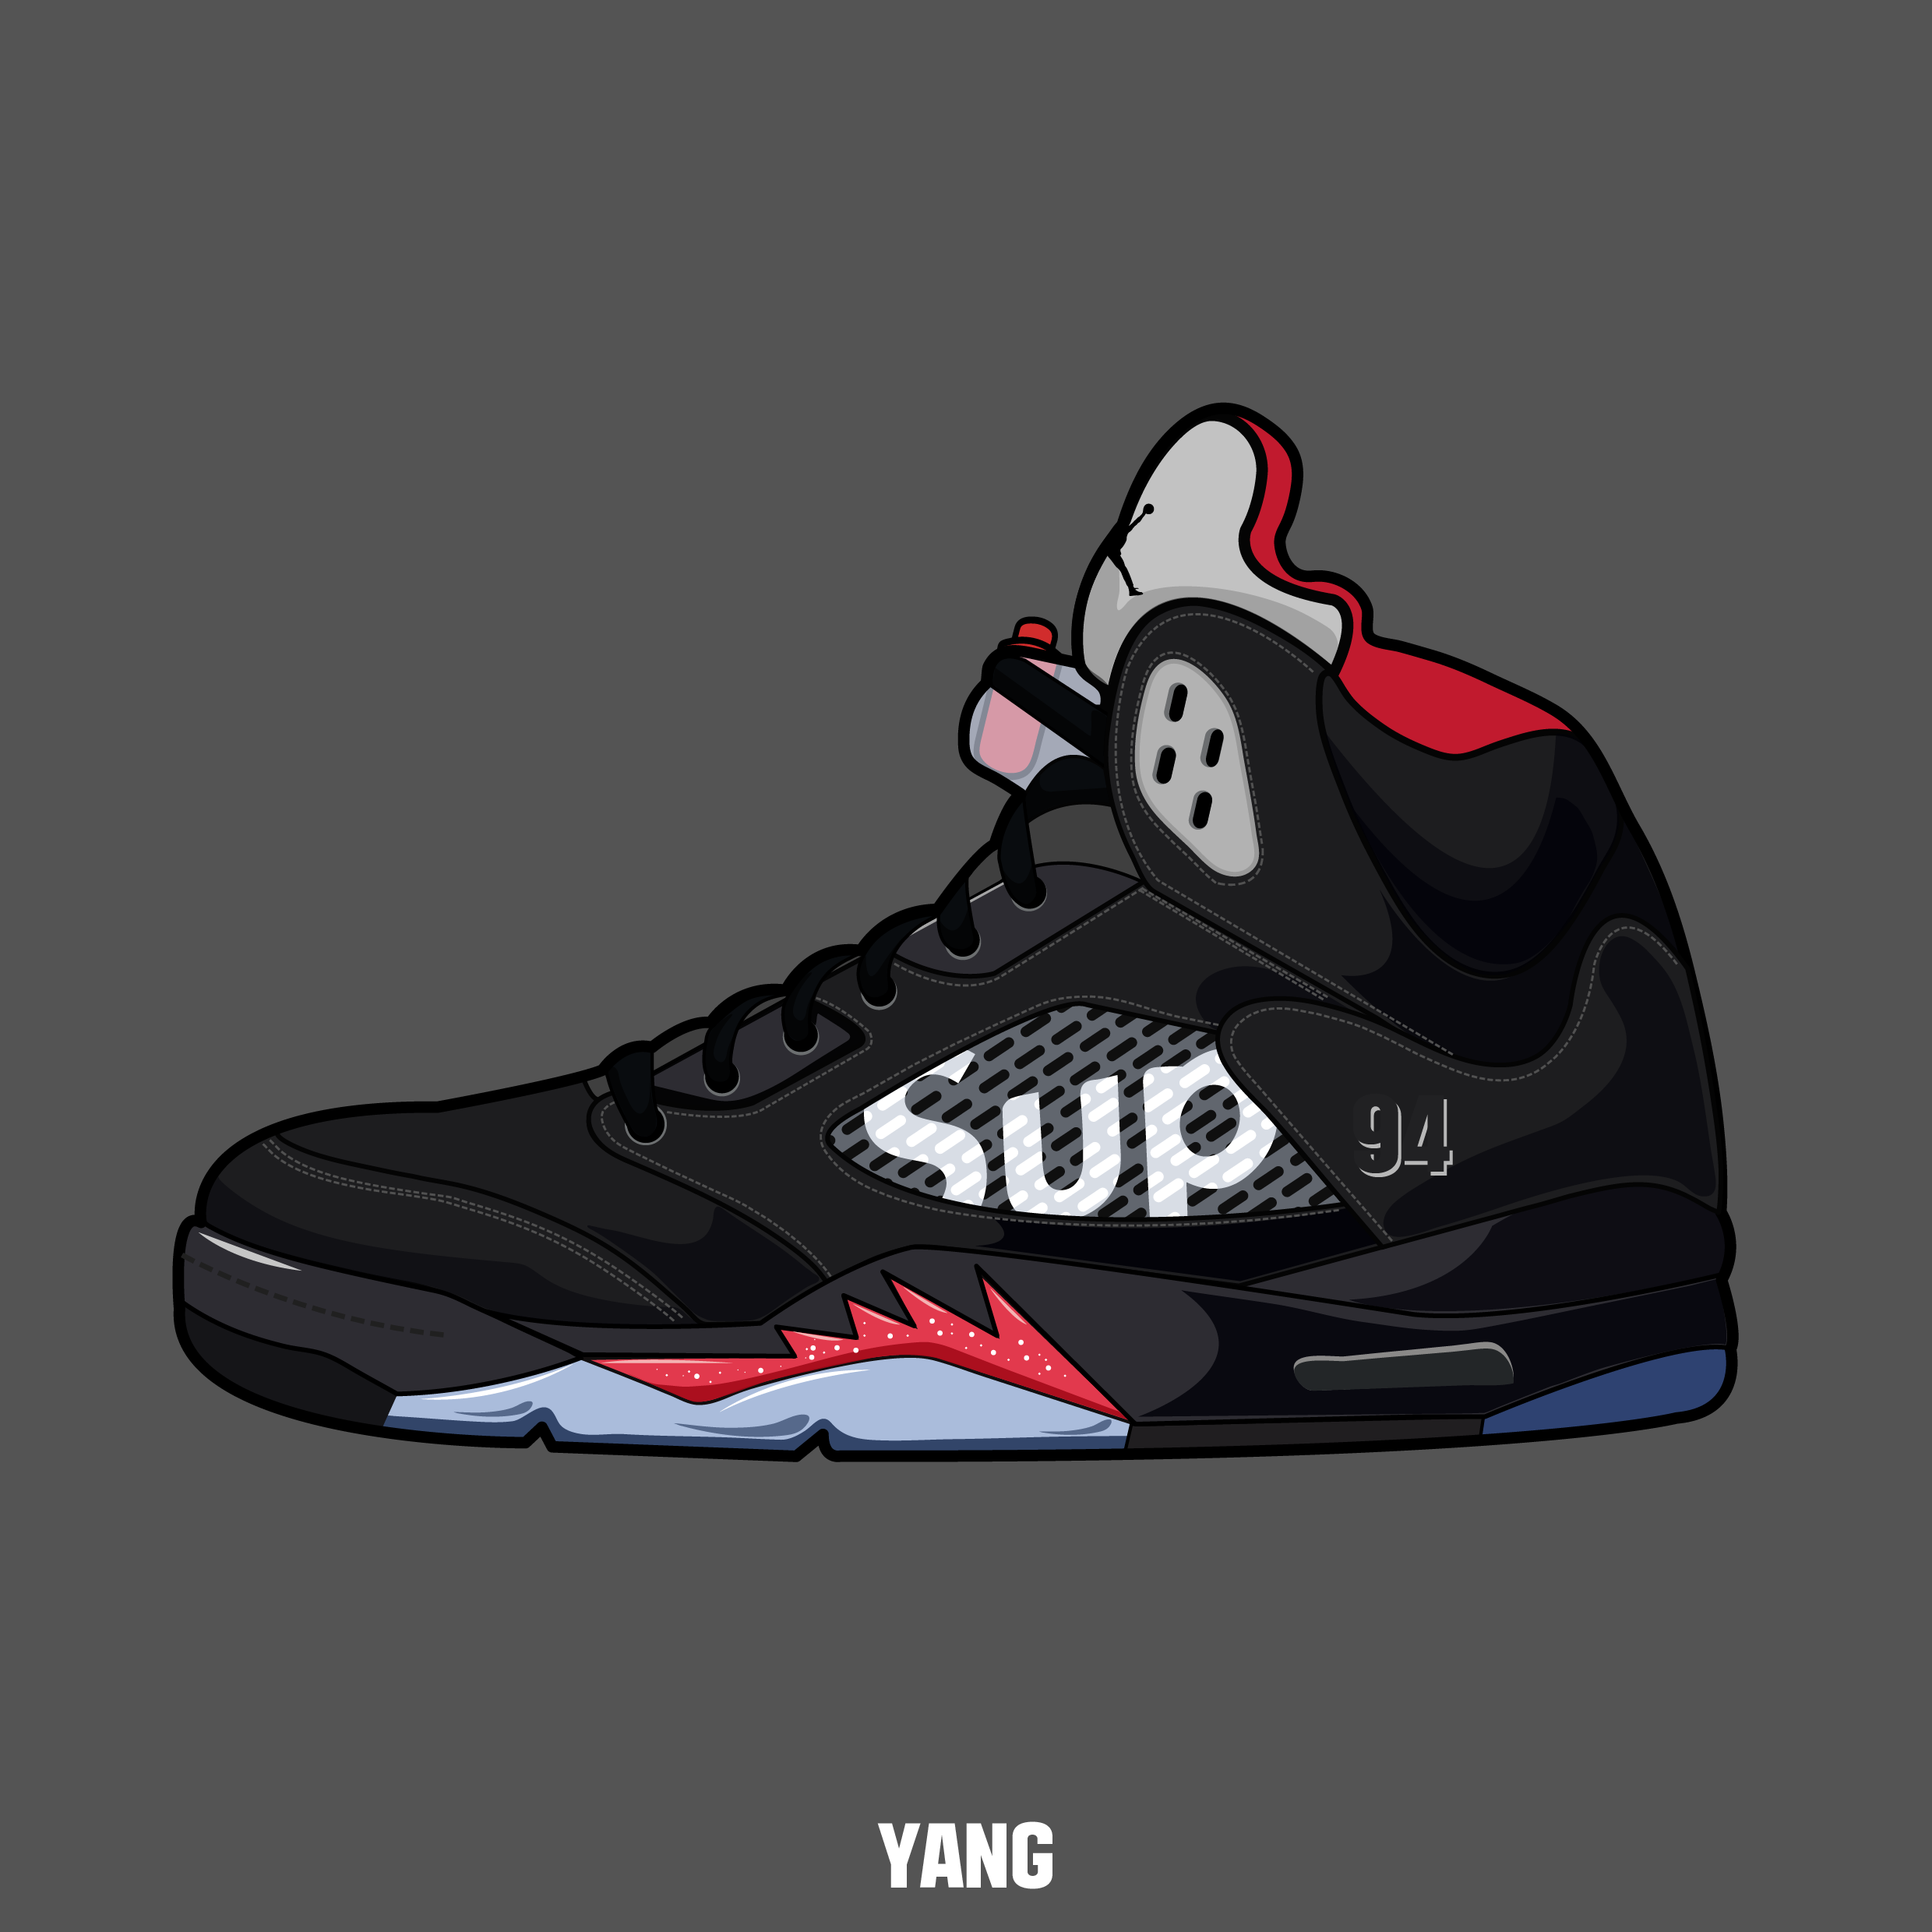 drawing-shoes-sneakers-nike-air-jordan-carmine-graphic-design-illustrator-illustration-pic-wallpaper-wp4605496